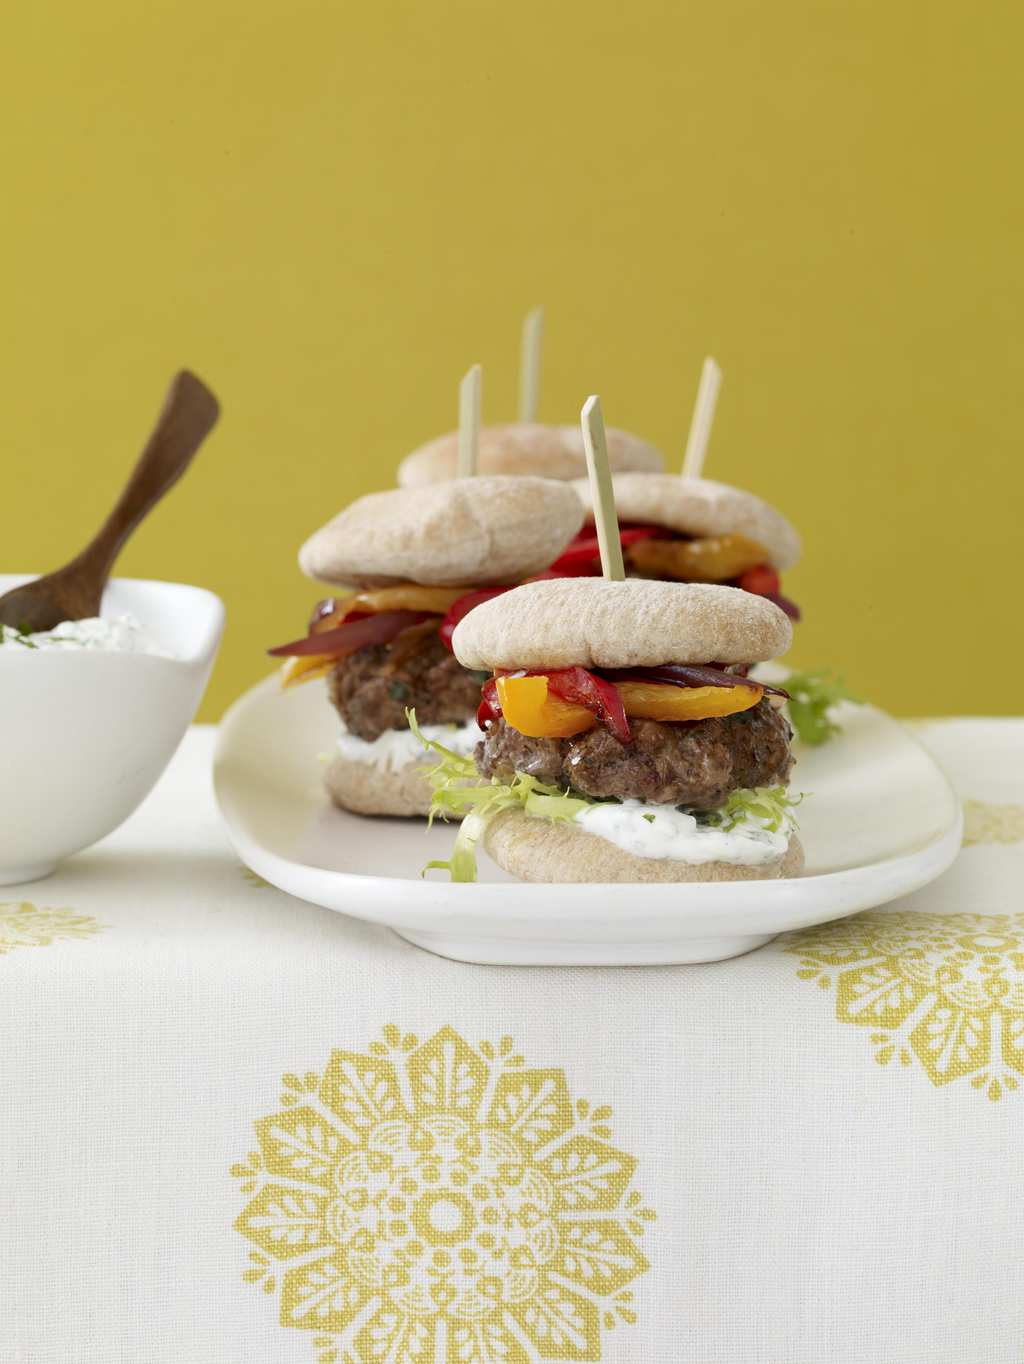 Mini burgers on white platter w yellow linen and background